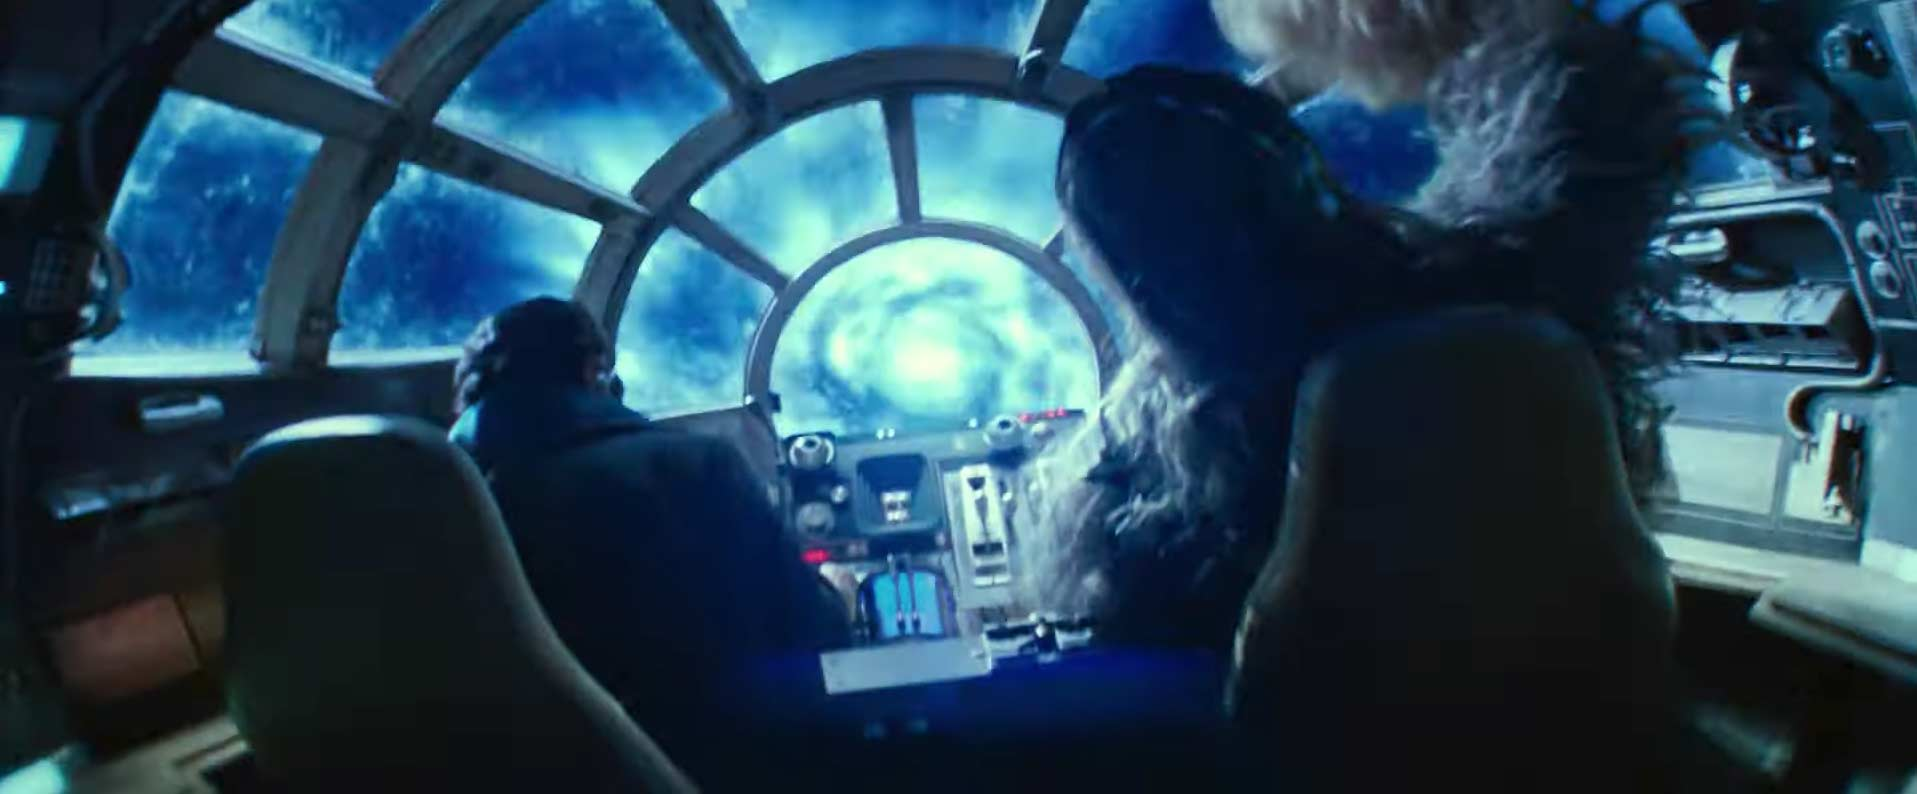 lightspeed starwars theriseofskywalker